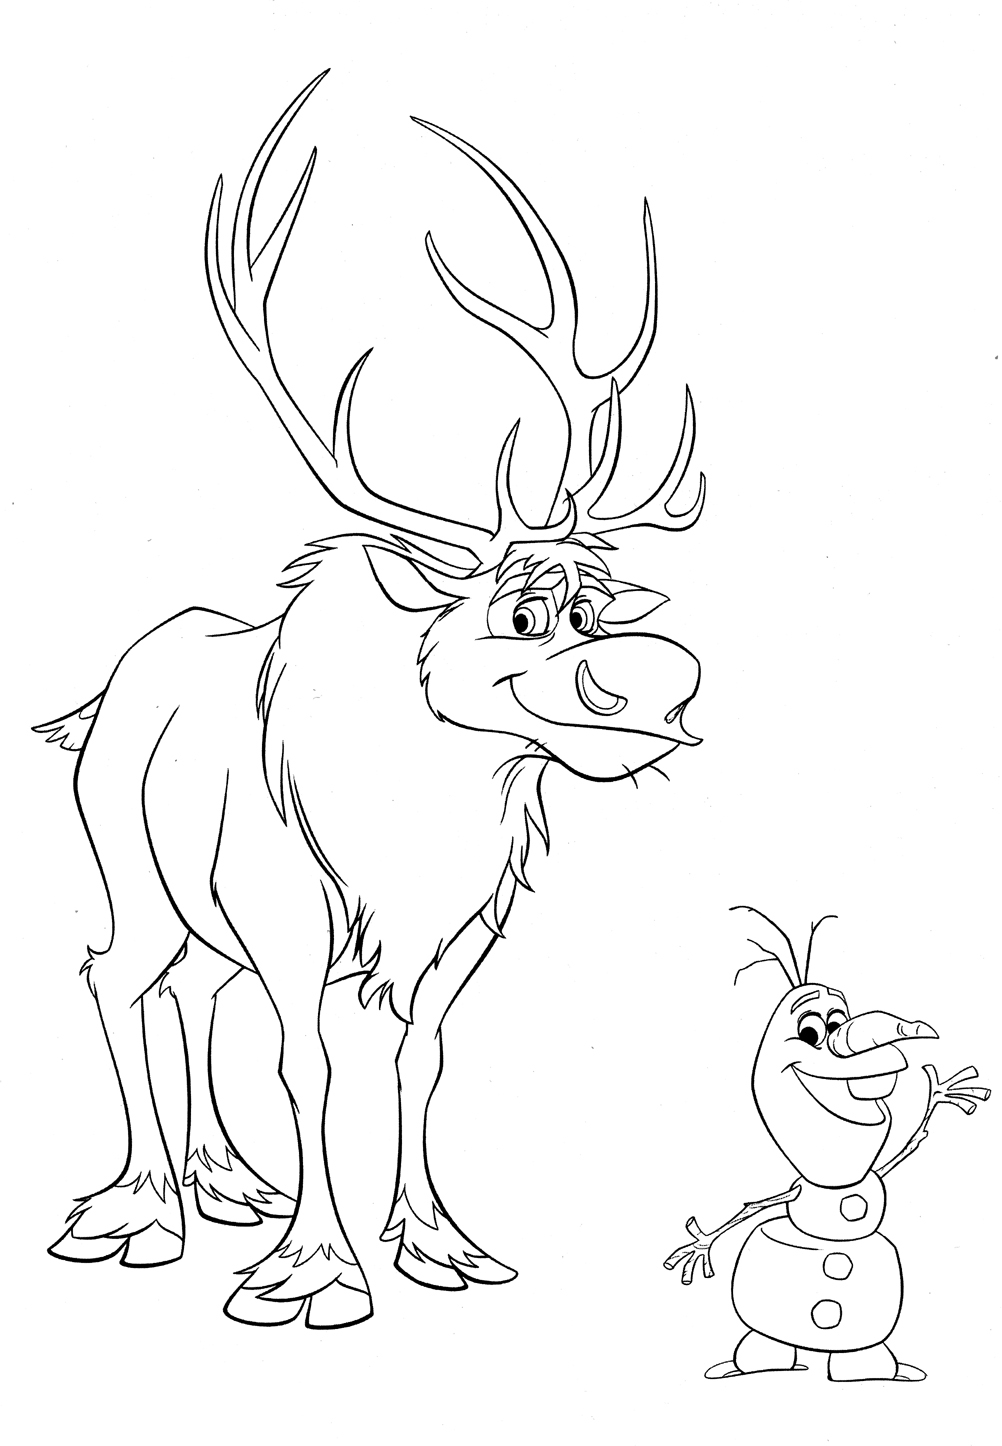 disney frozen sven drawing - photo #16